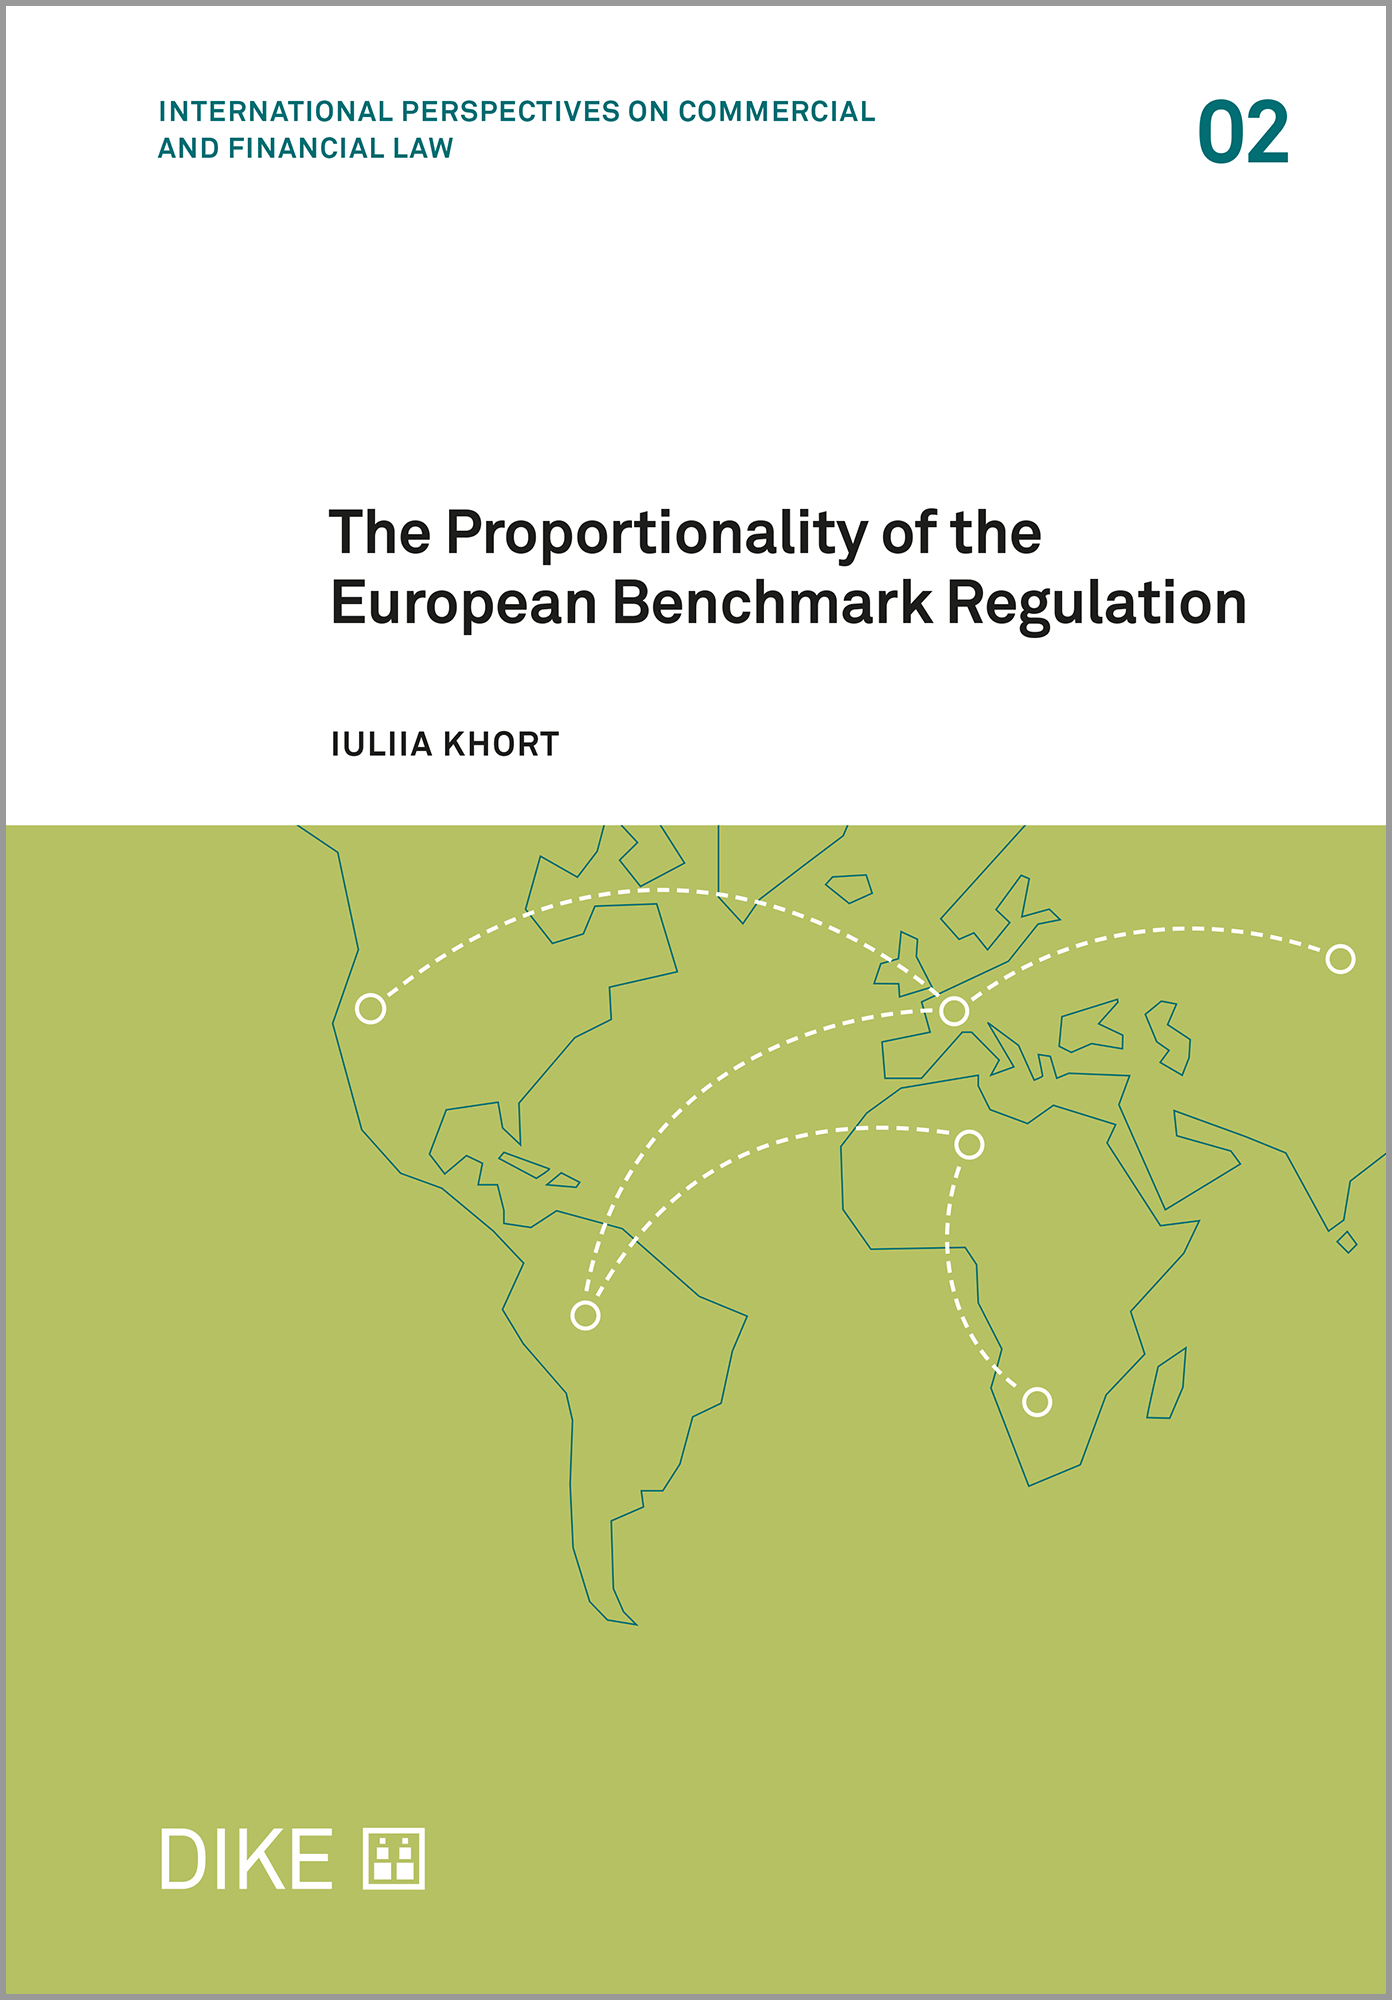 The Proportionality of the European Benchmark Regulation